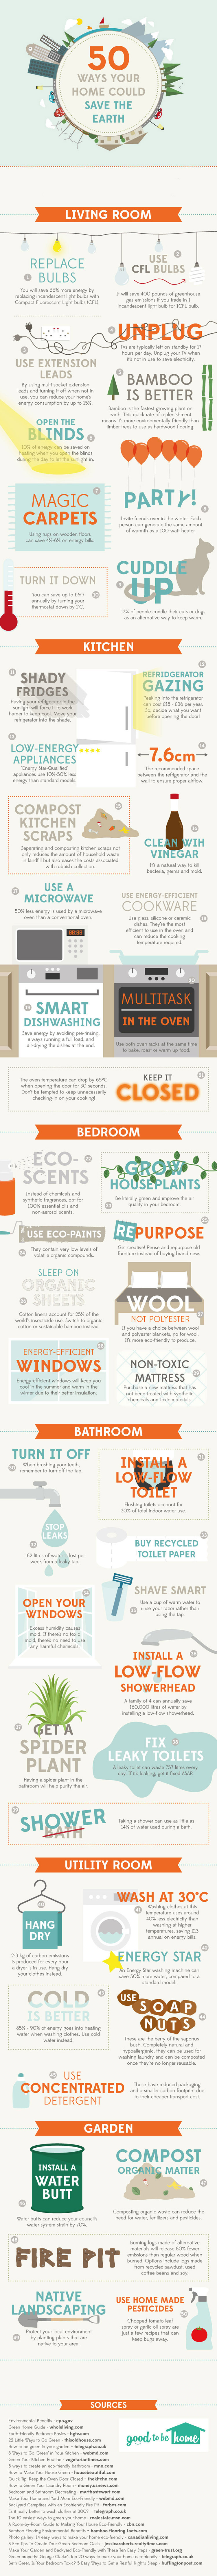 2_50-simple-ways-to-save-the-planet